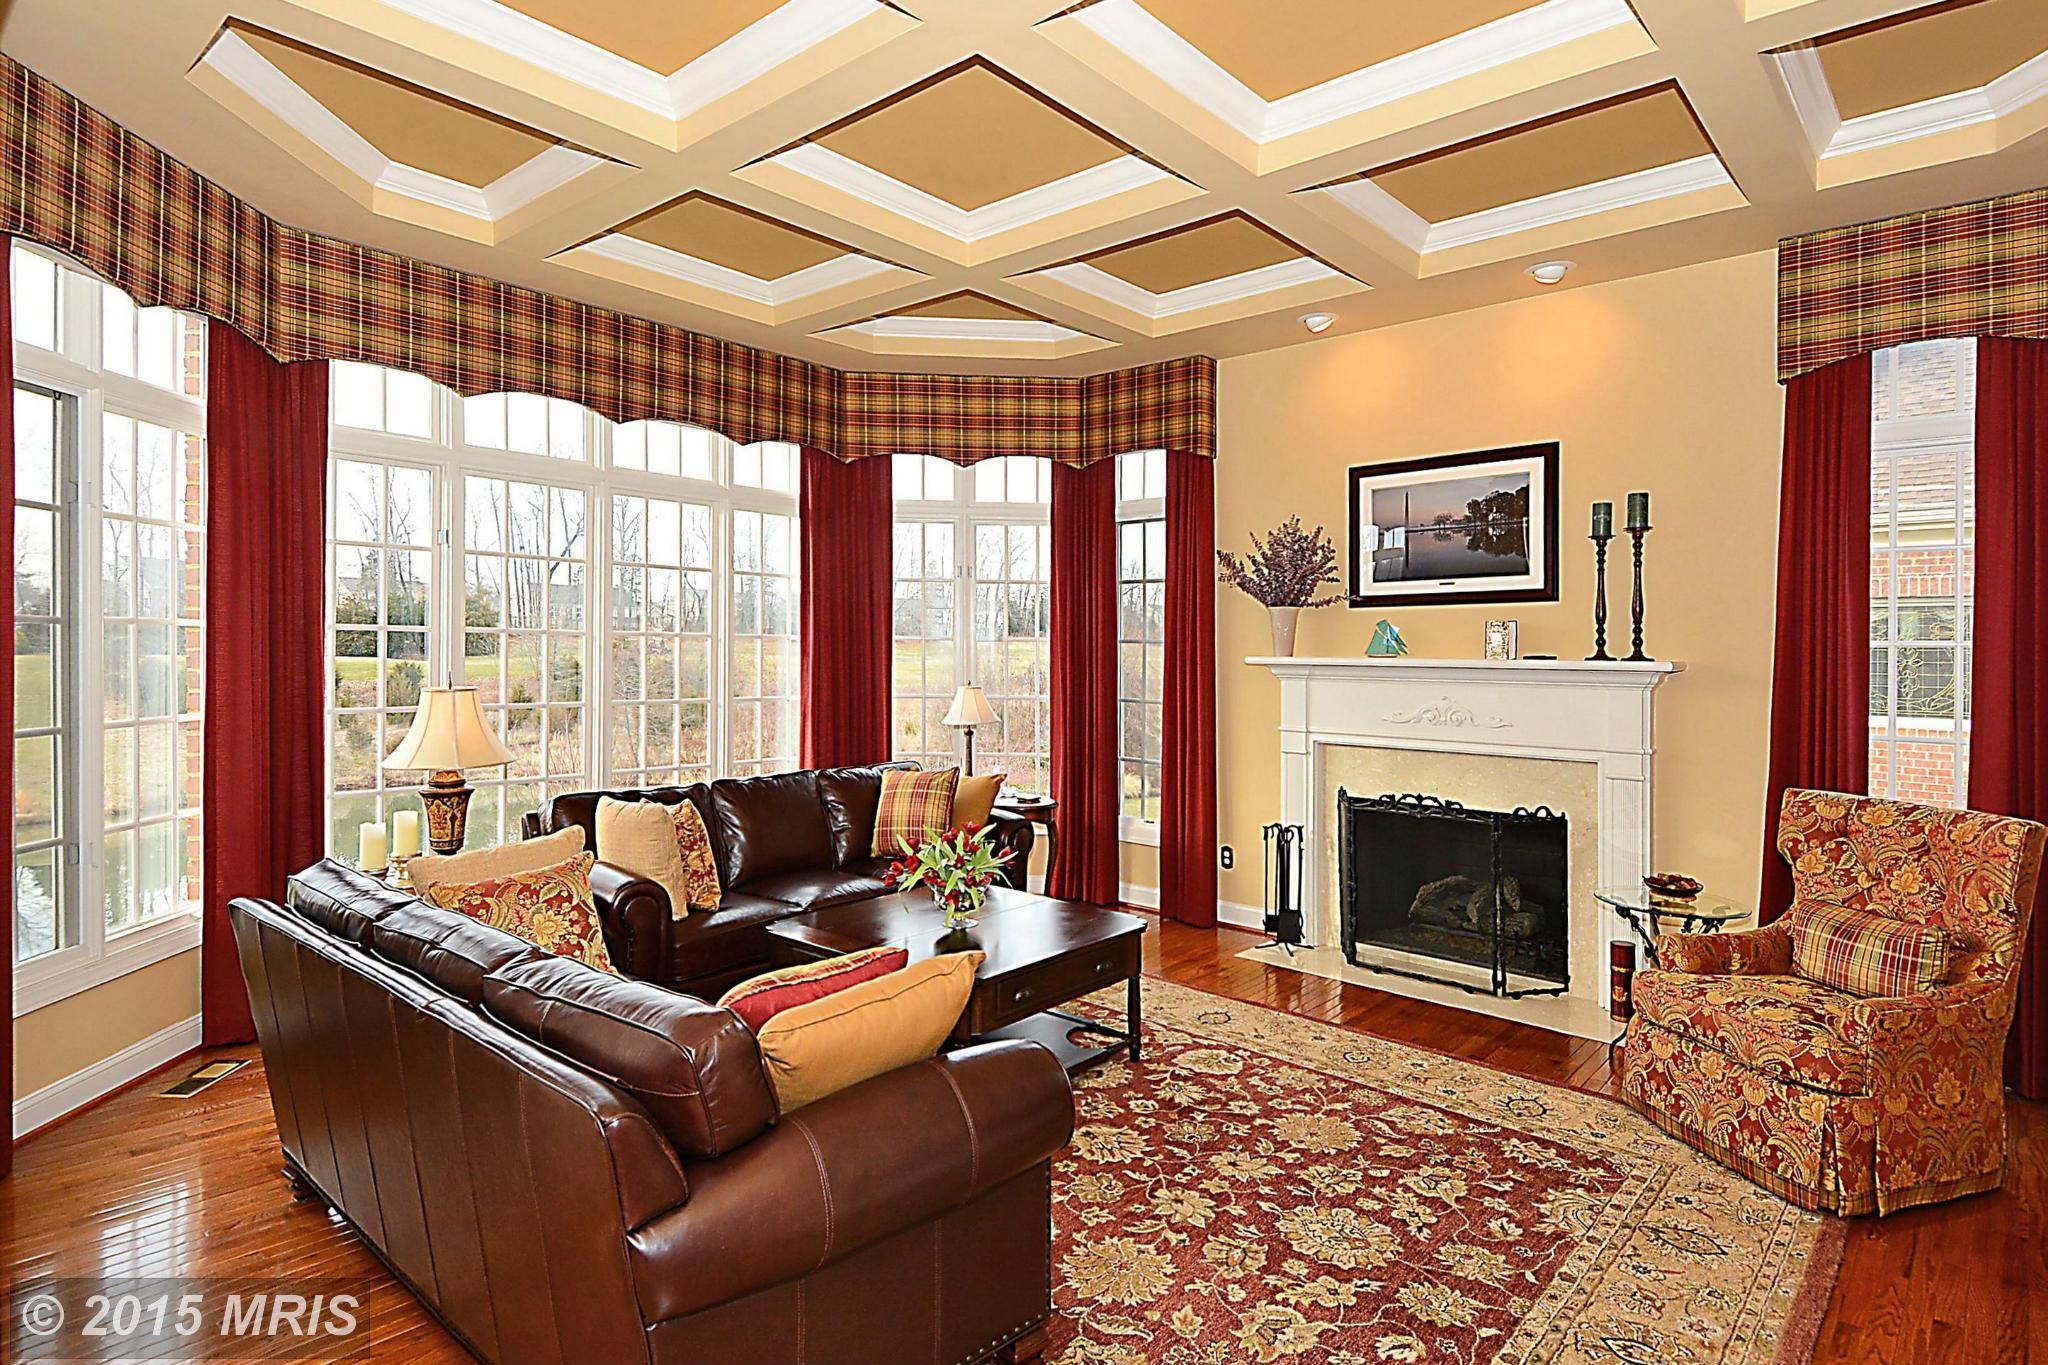 5 million dollar dream homes for sale in northern virginia